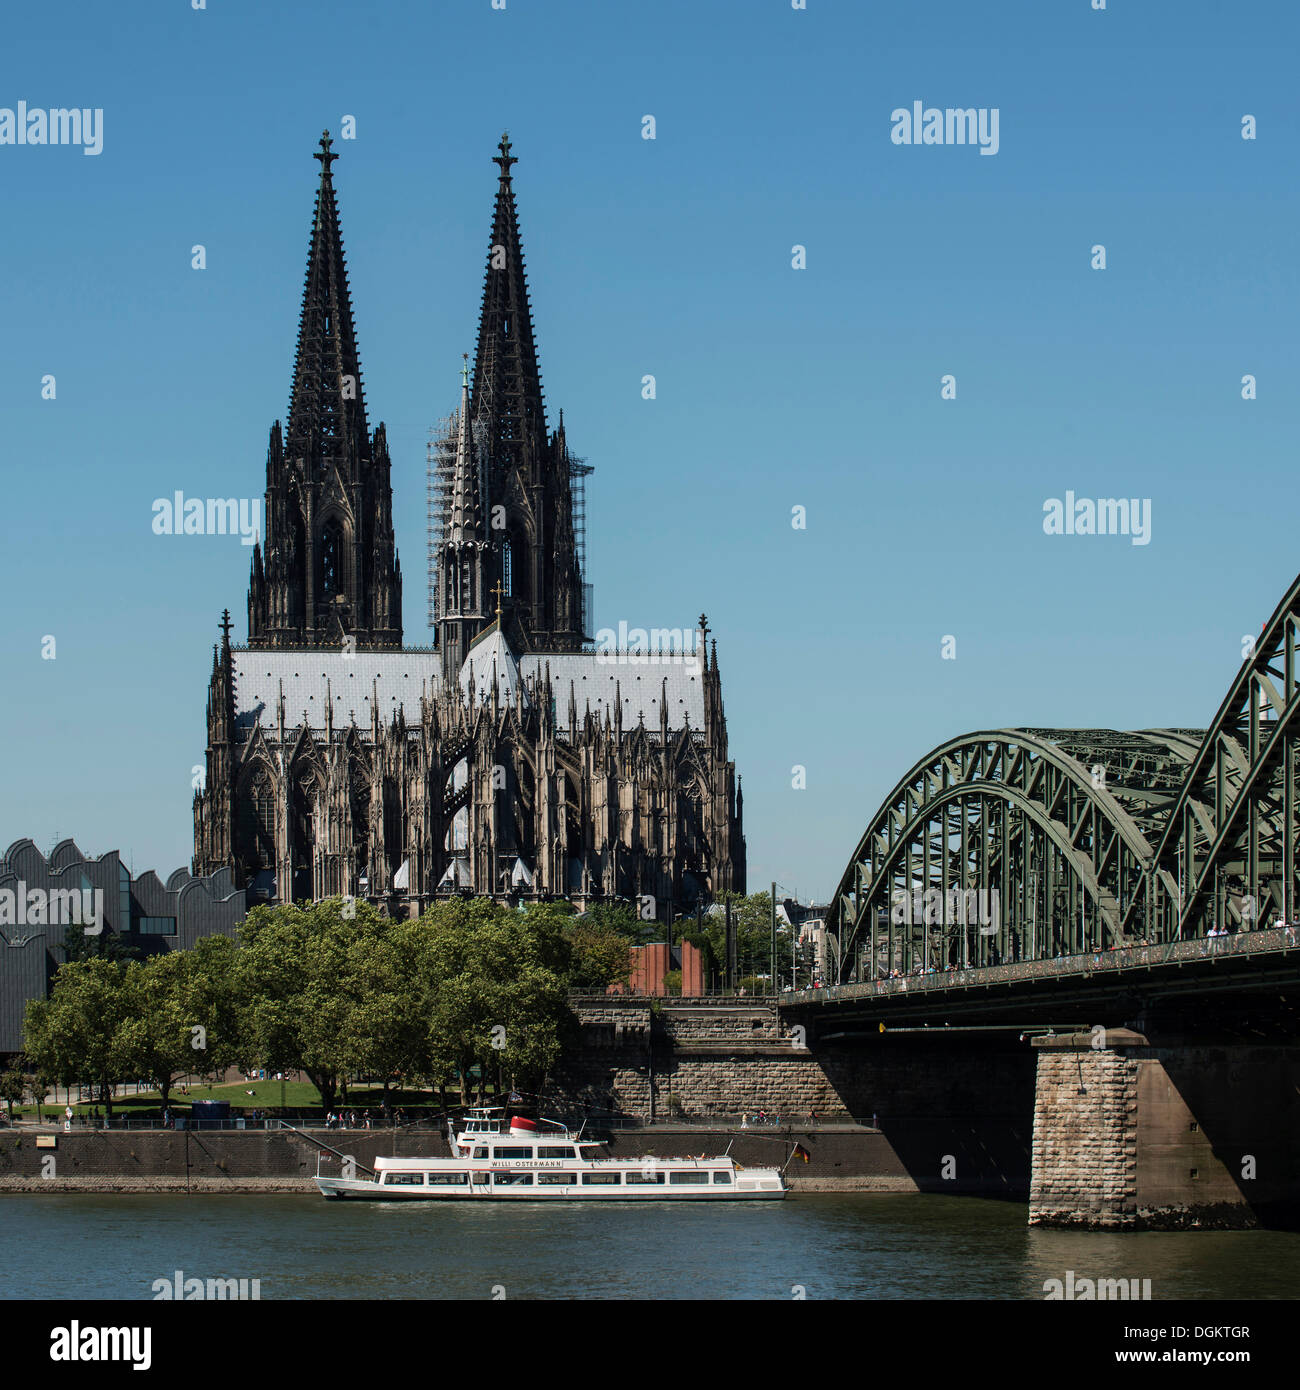 View as seen from Deutz across the Rhine river, Hohenzollernbruecke bridge, Willi Ostermann excursion boat in the foreground - Stock Image